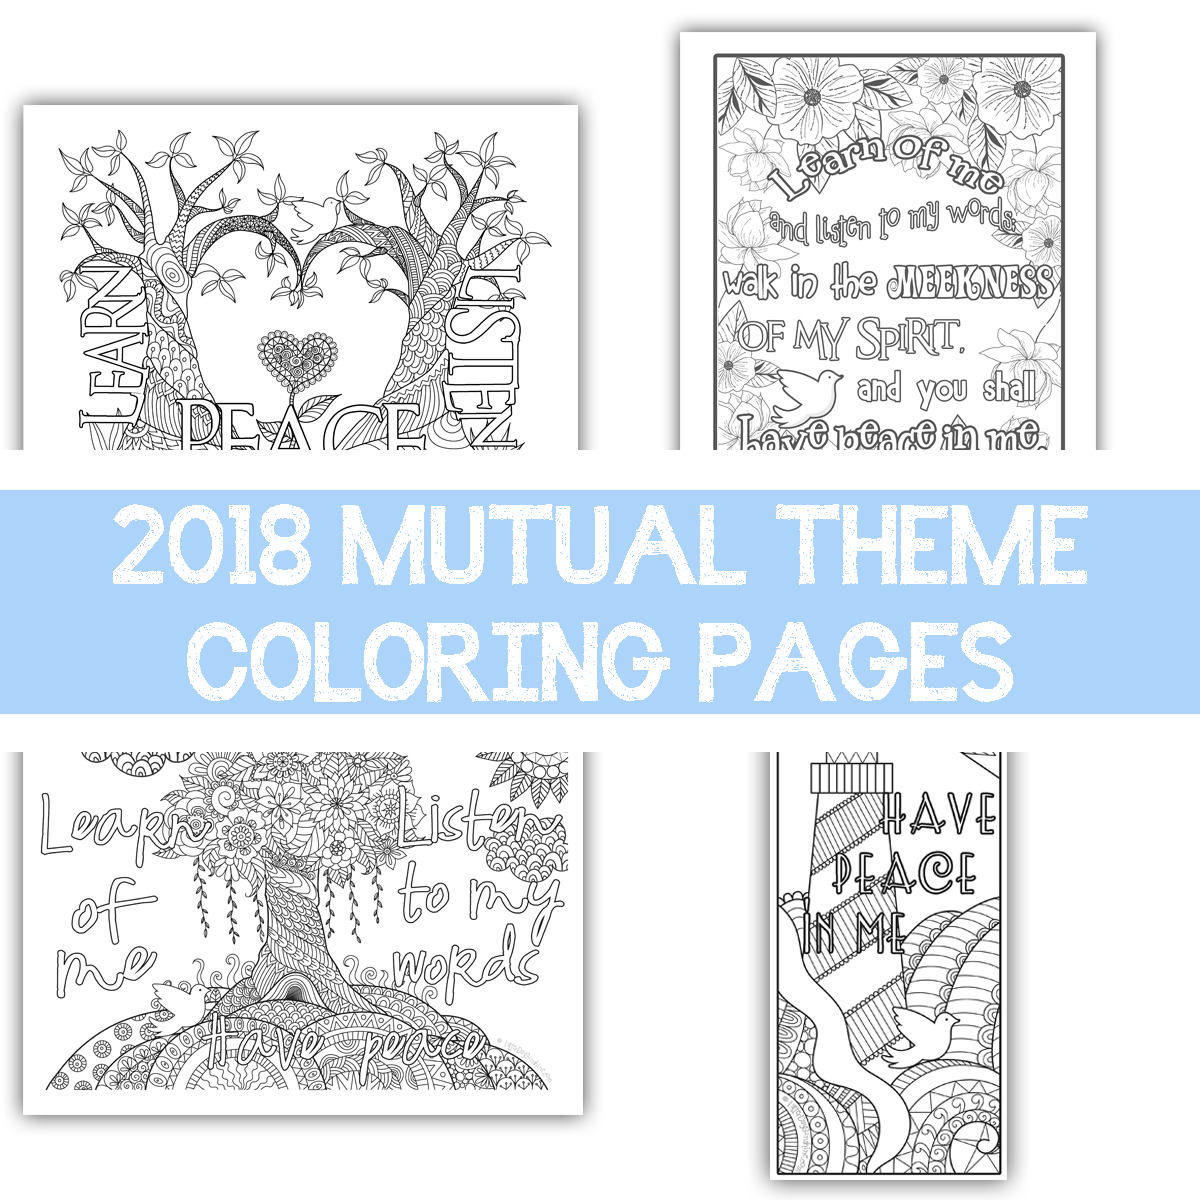 Package Of All Four 2018 Mutual Theme Coloring Pages